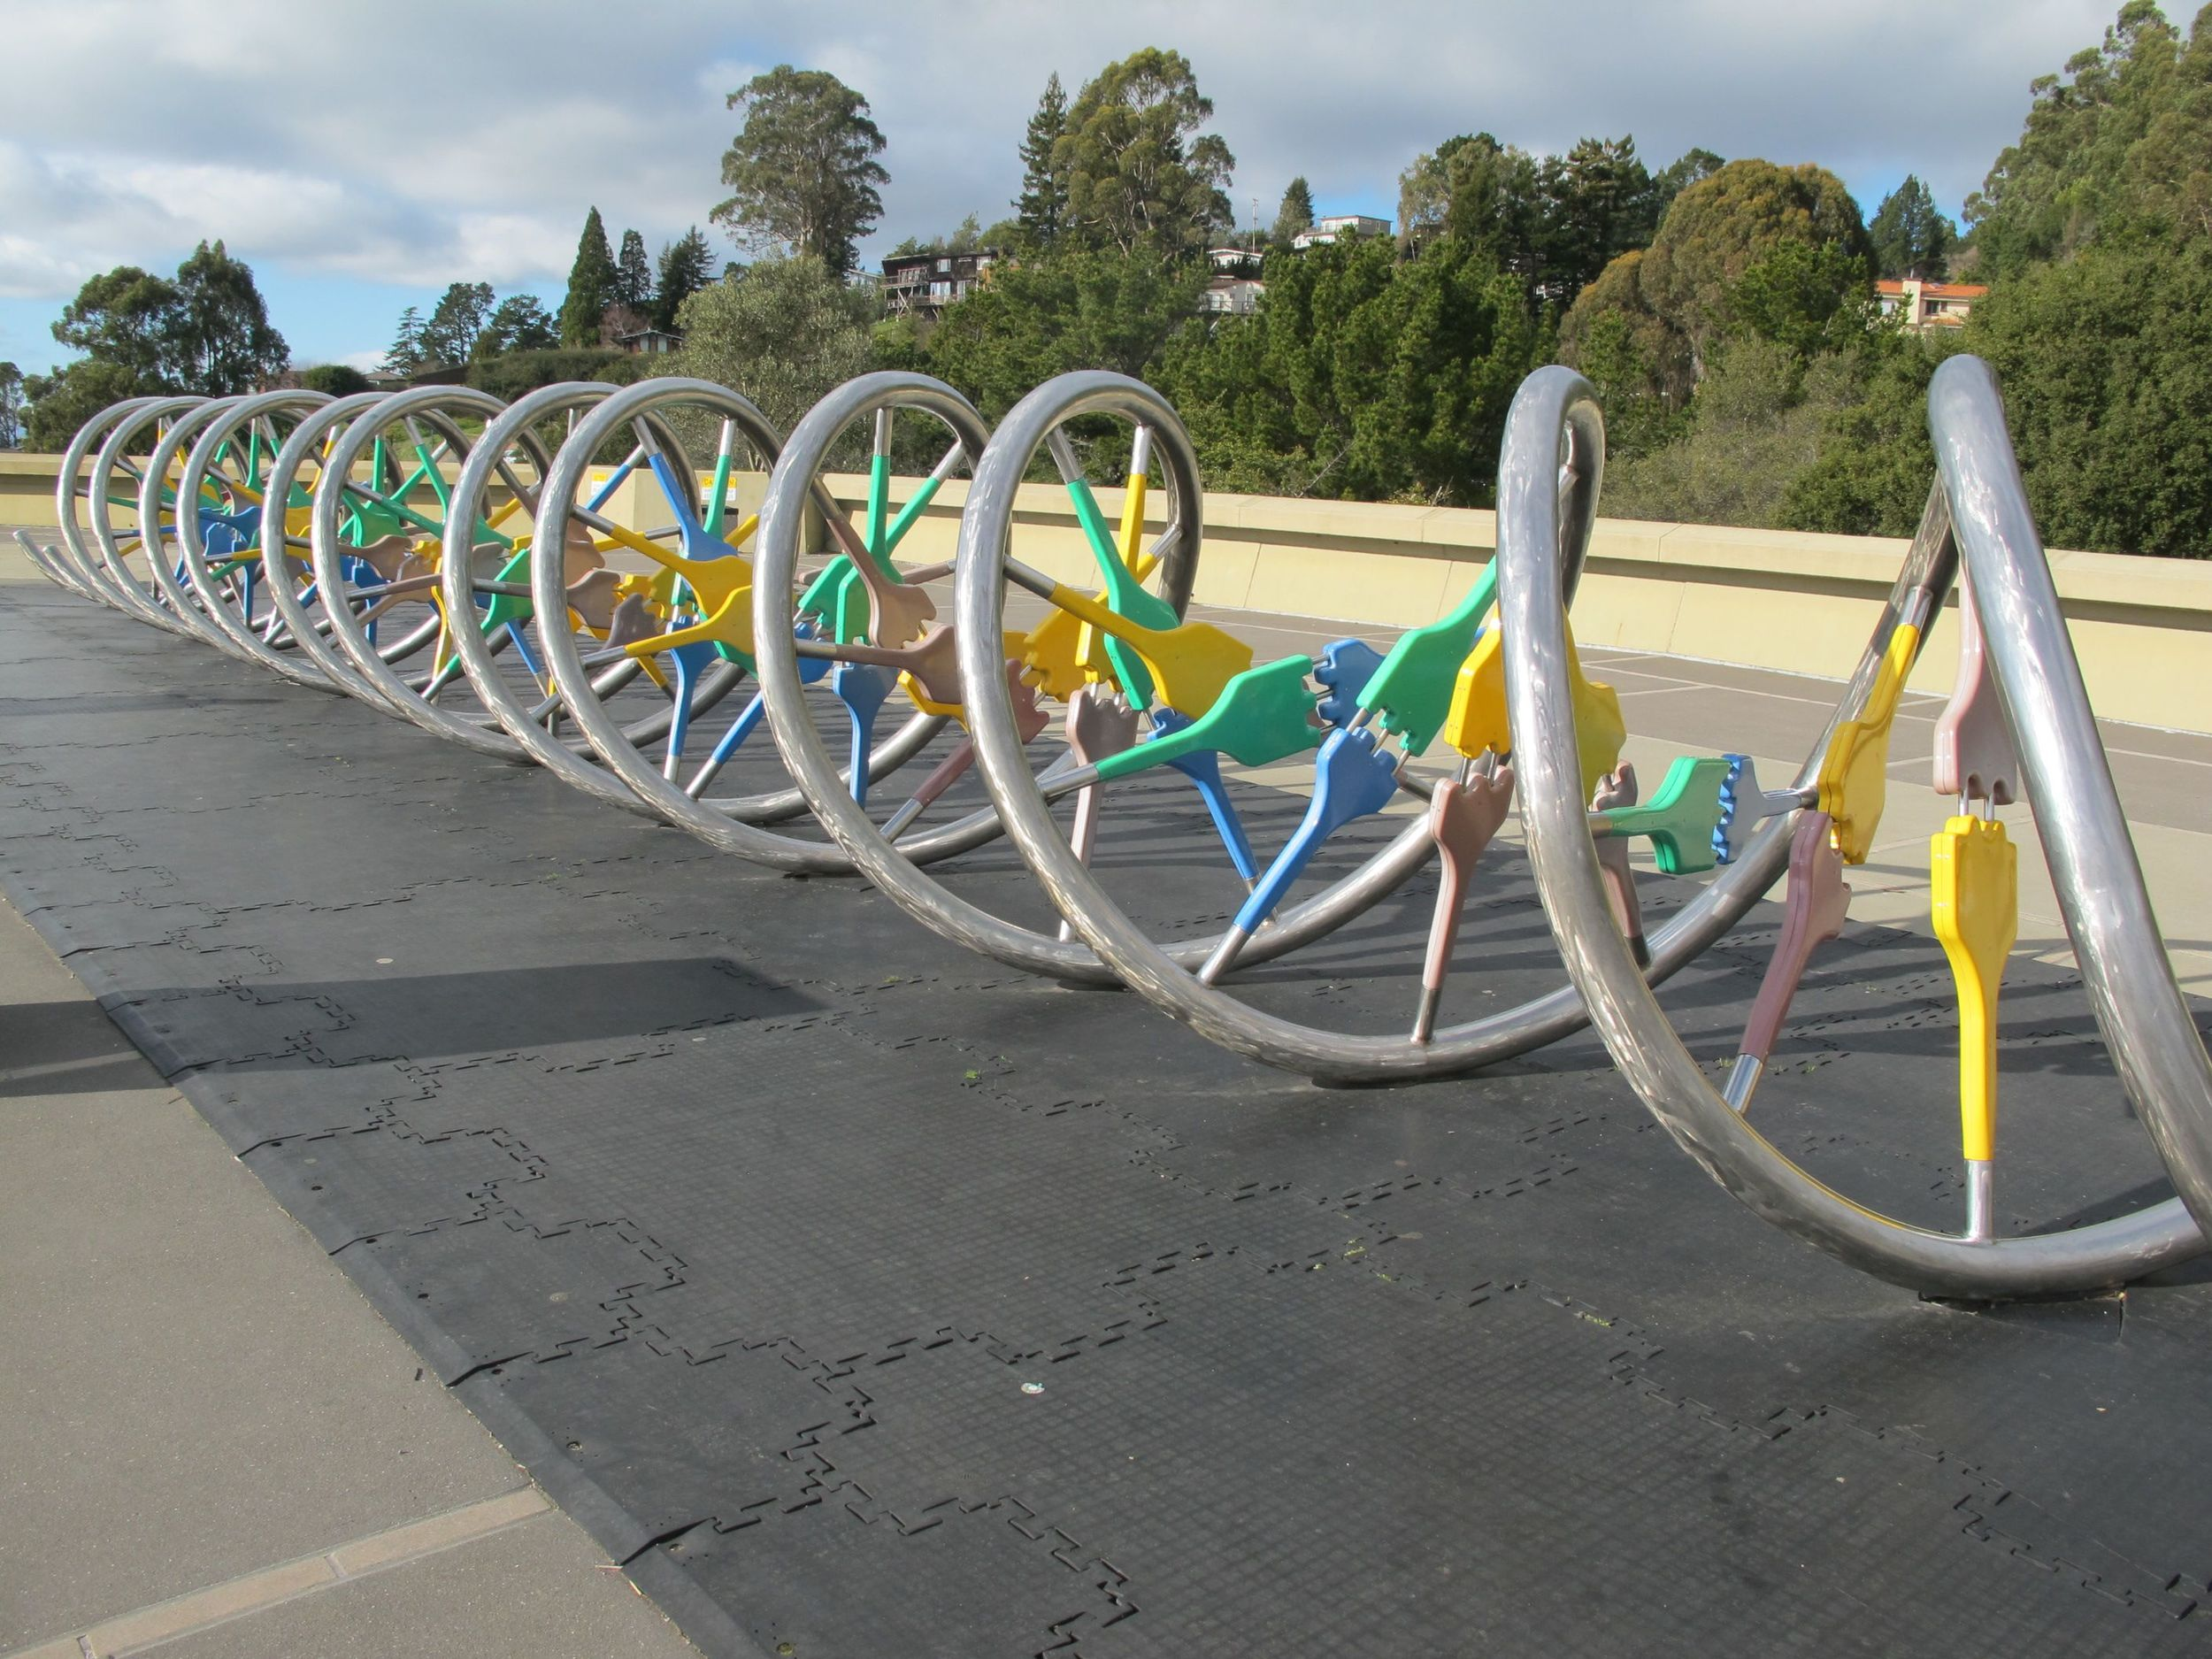 Outside the Lawrence Hall of Science is a large model of DNA. Those silvery pipes are the tk. The plastic connectors .